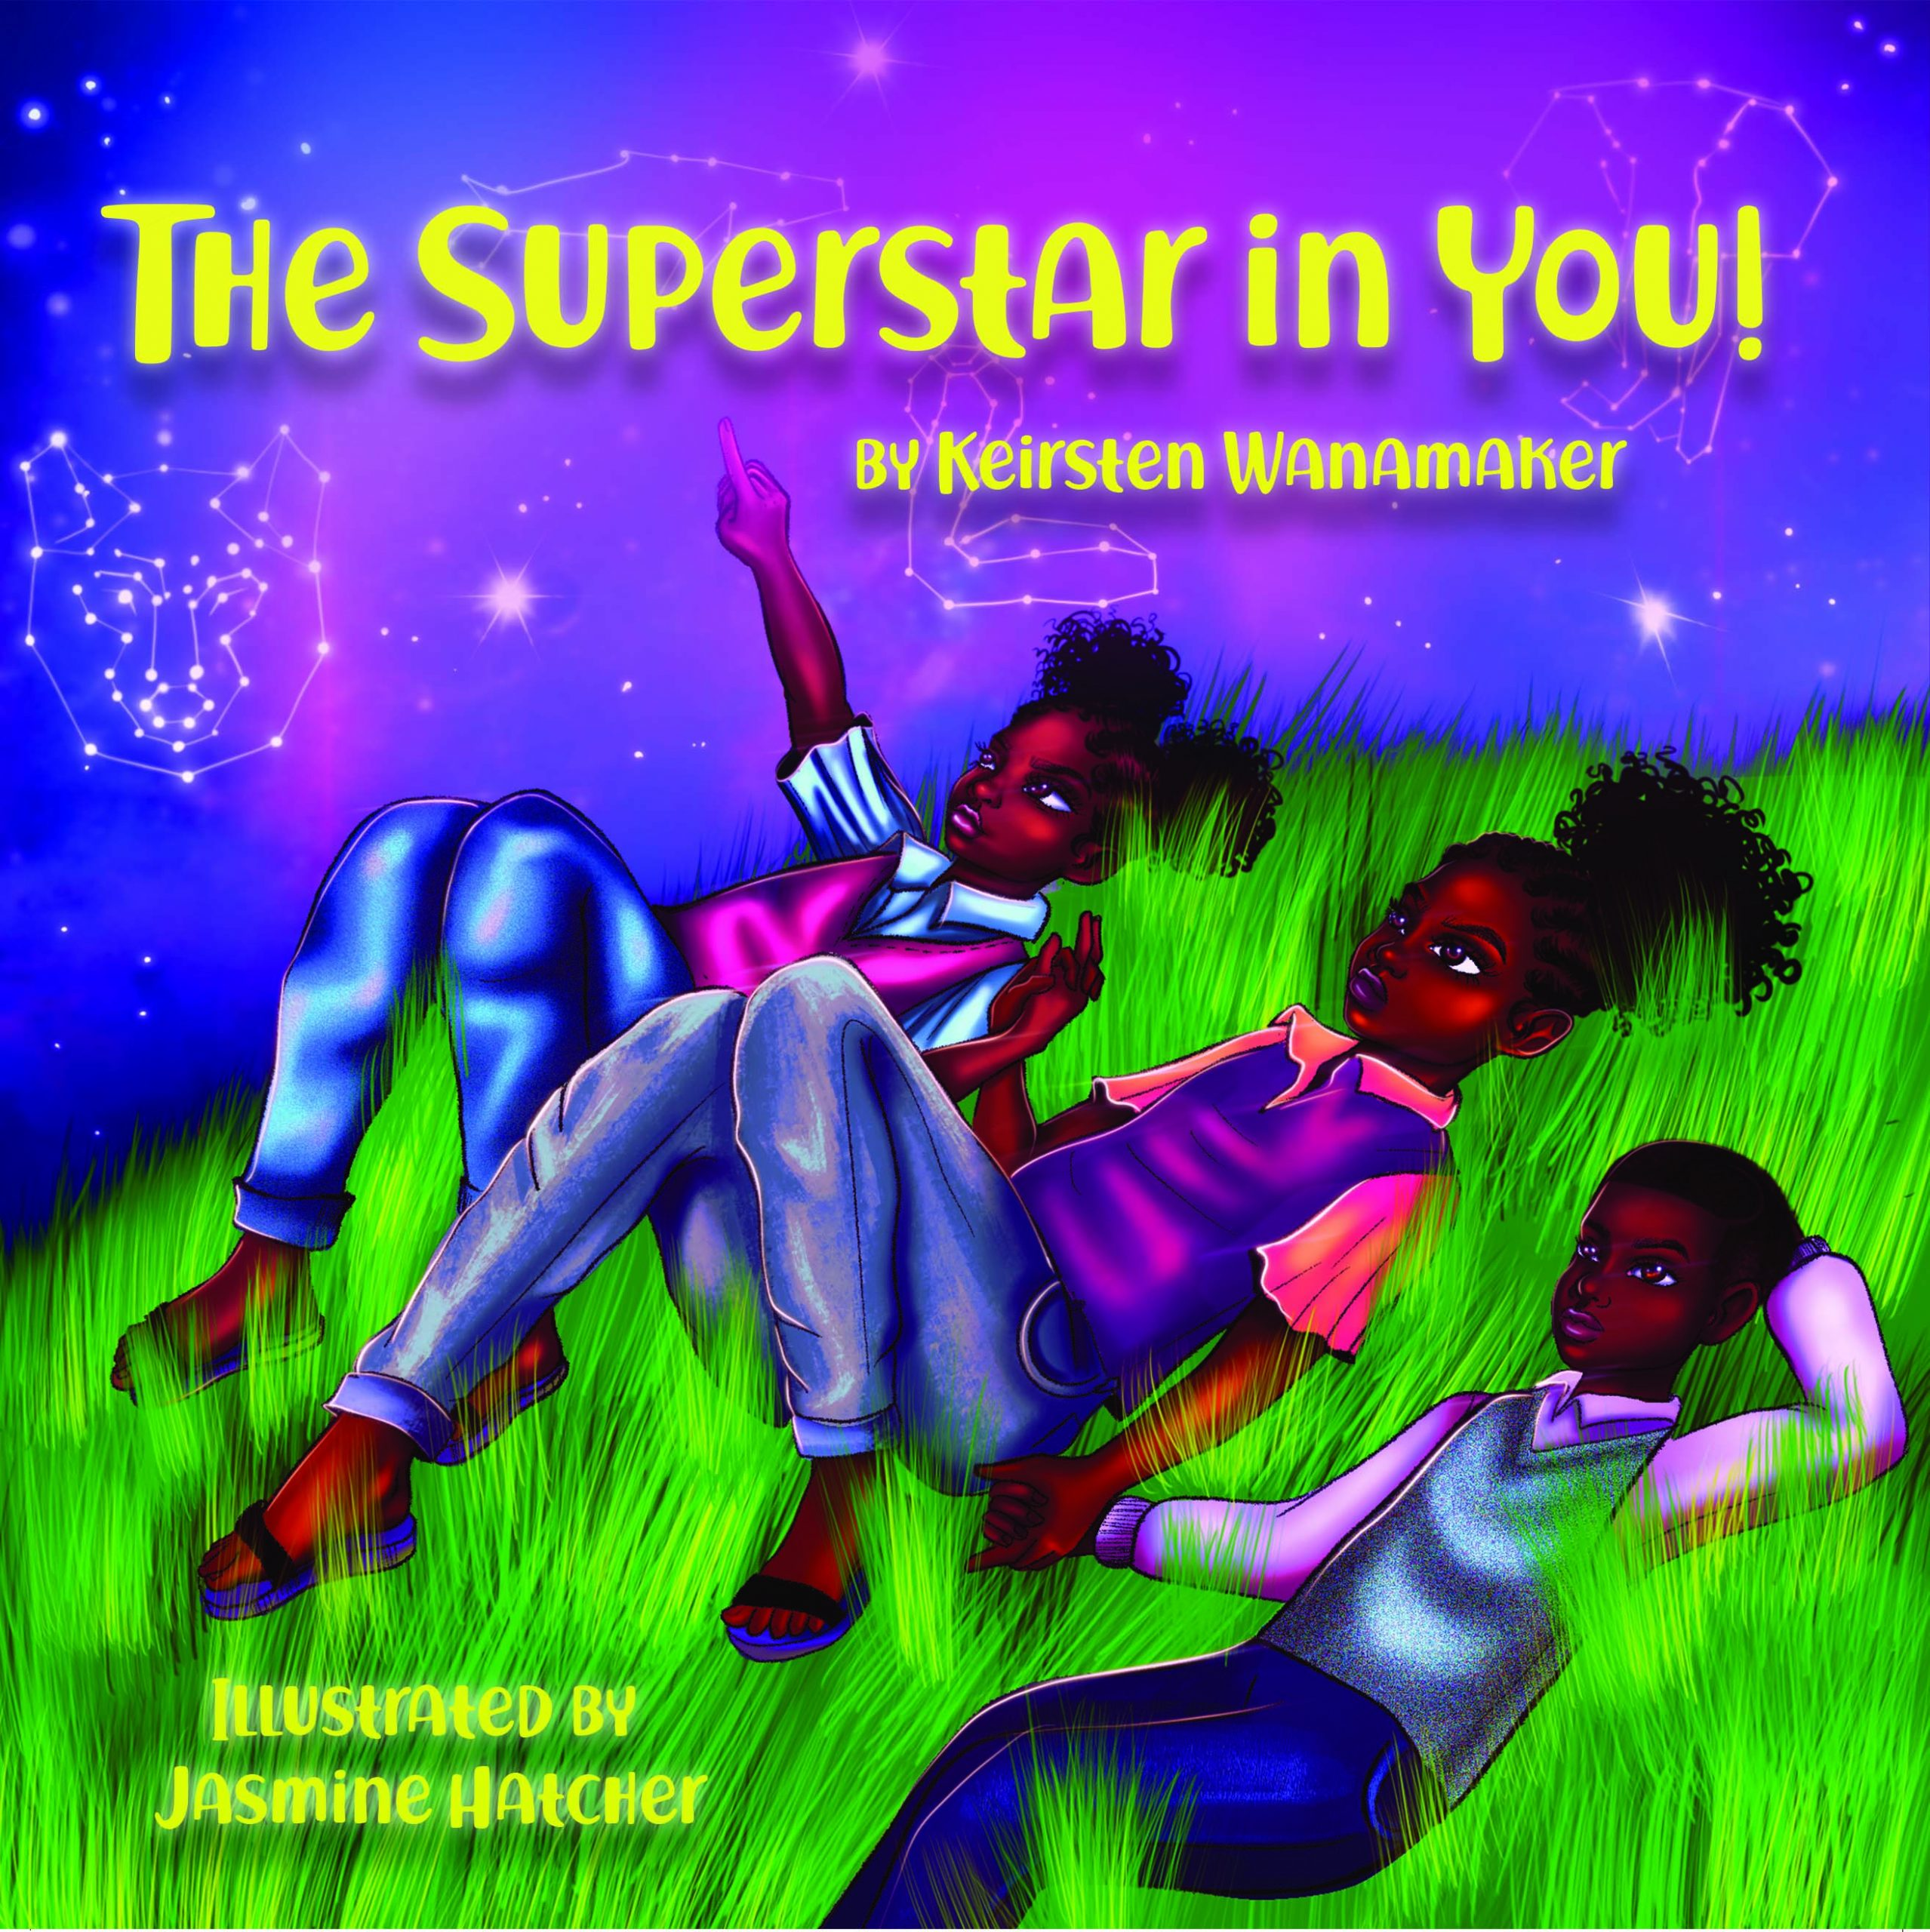 The Superstar in You by Keirsten Wanamaker